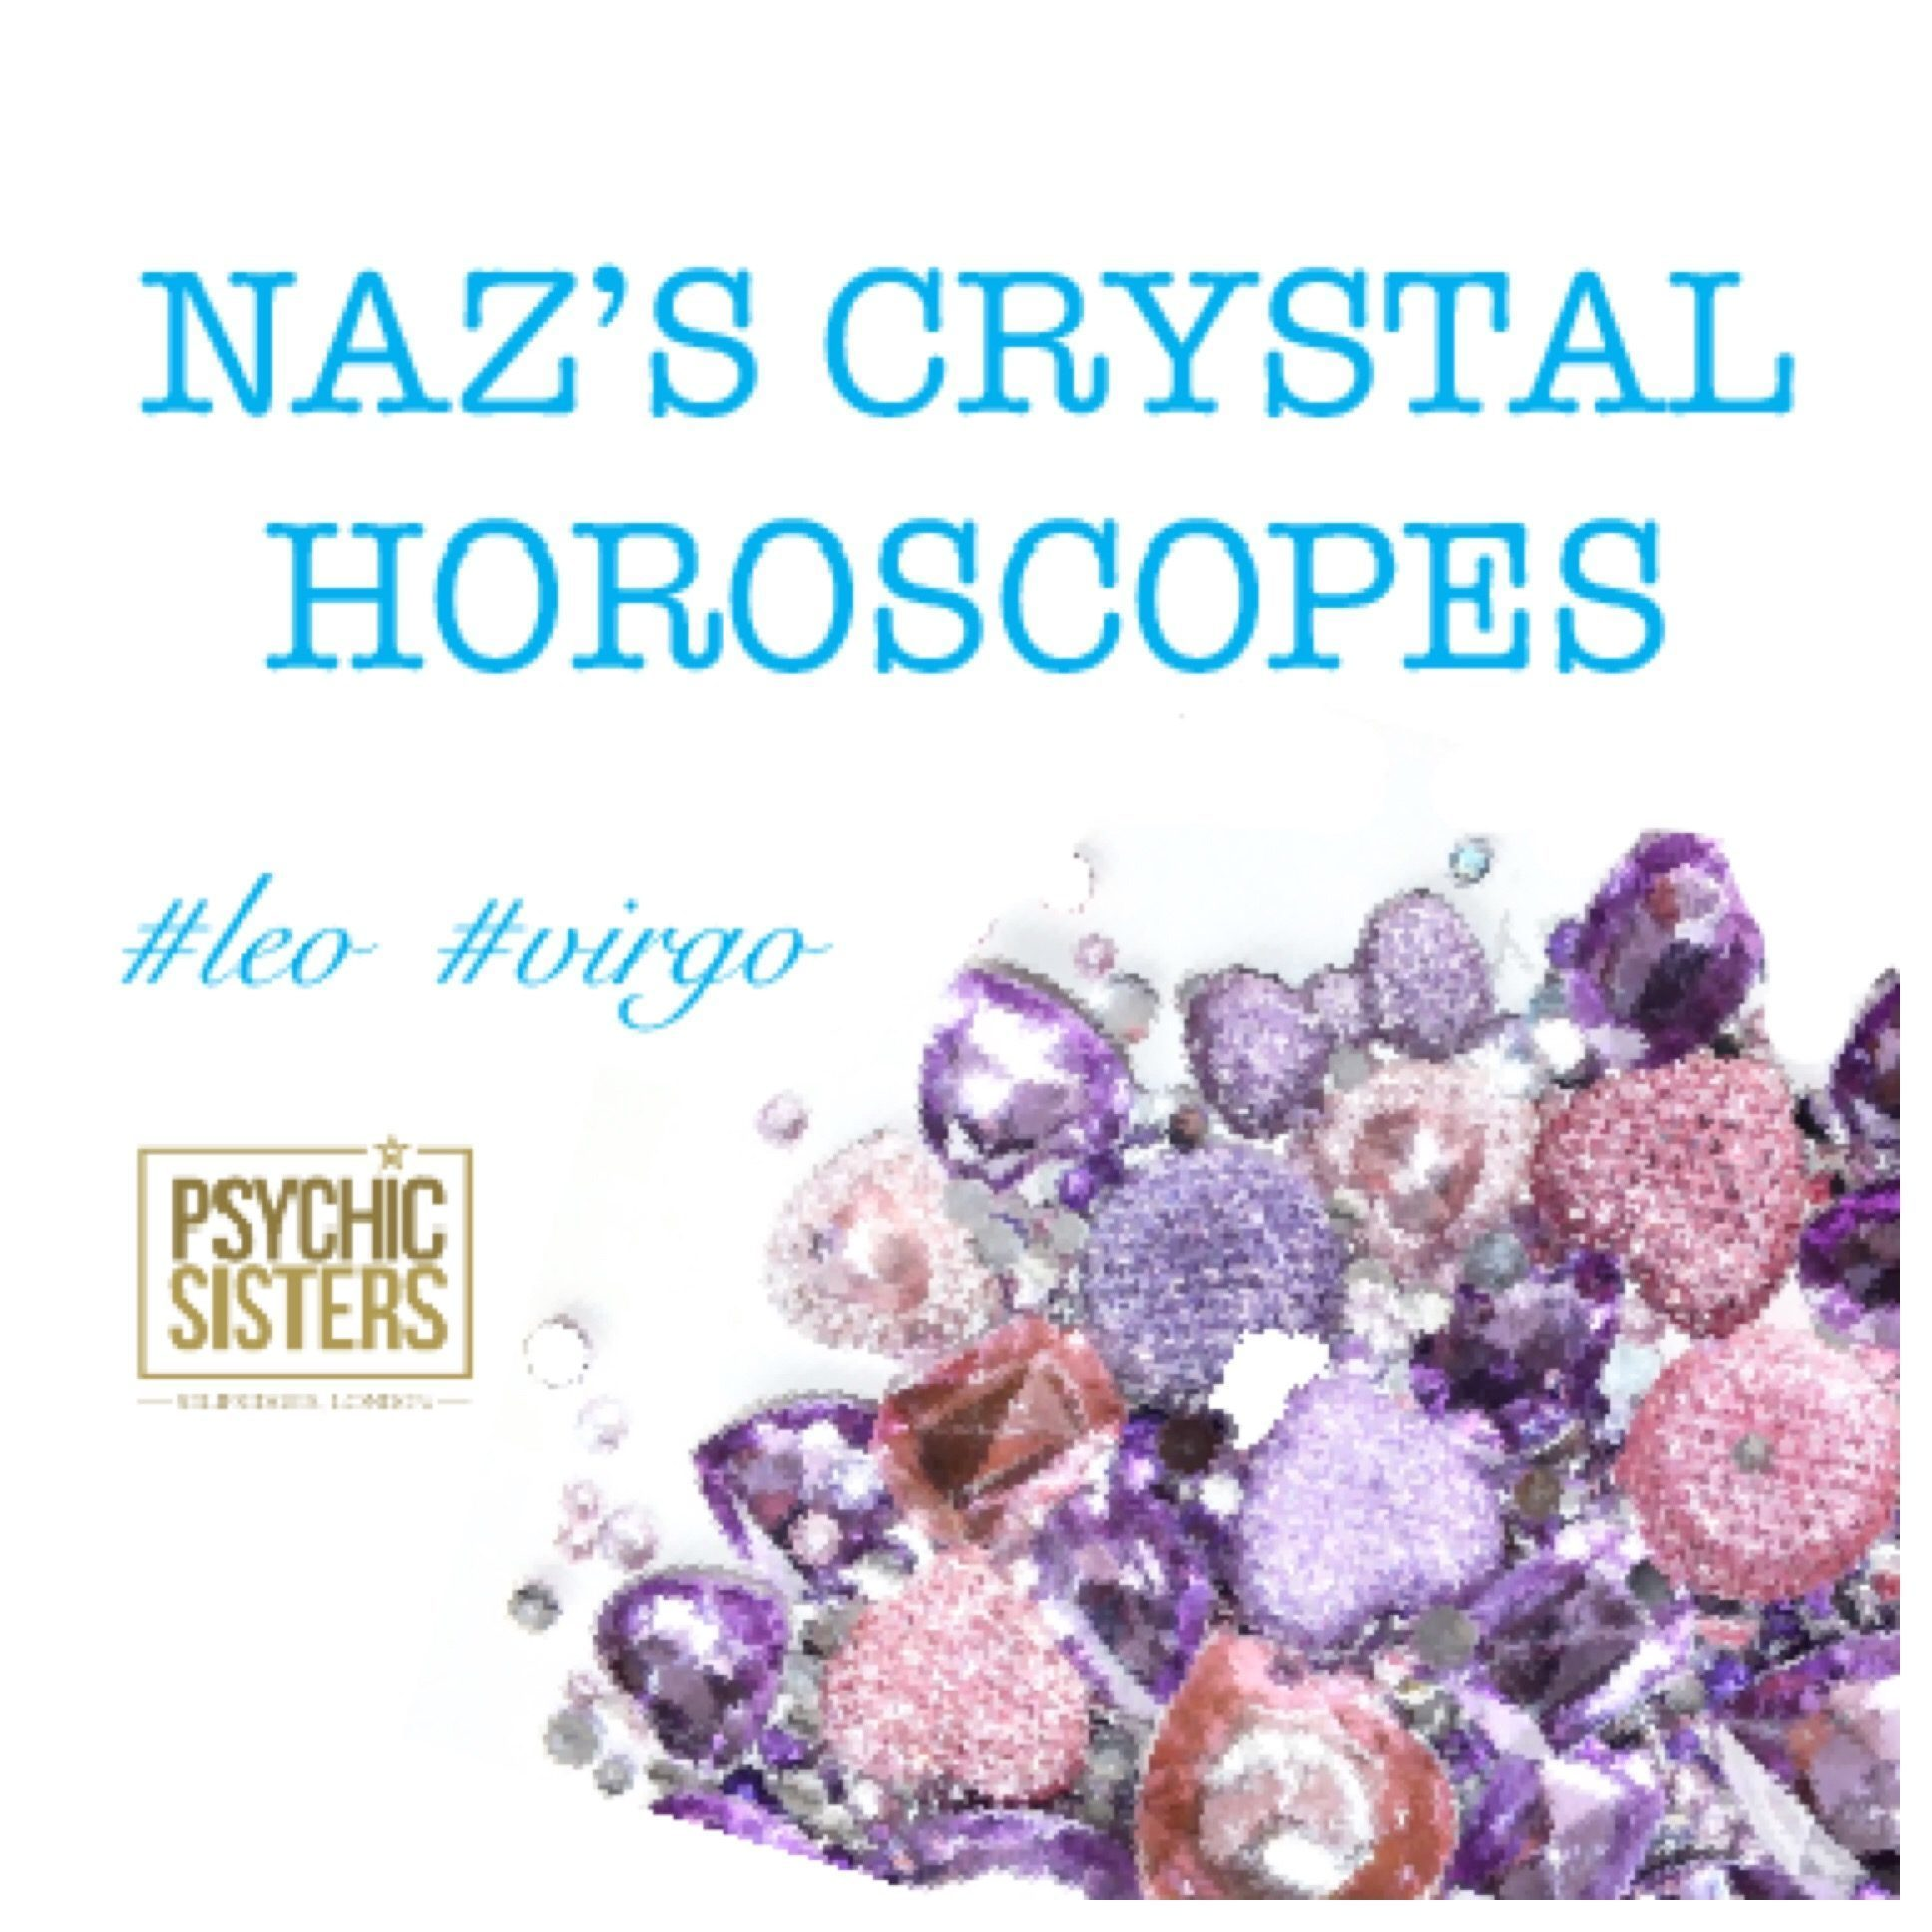 Naz's crystal horoscopes 24th - 30th June 2018